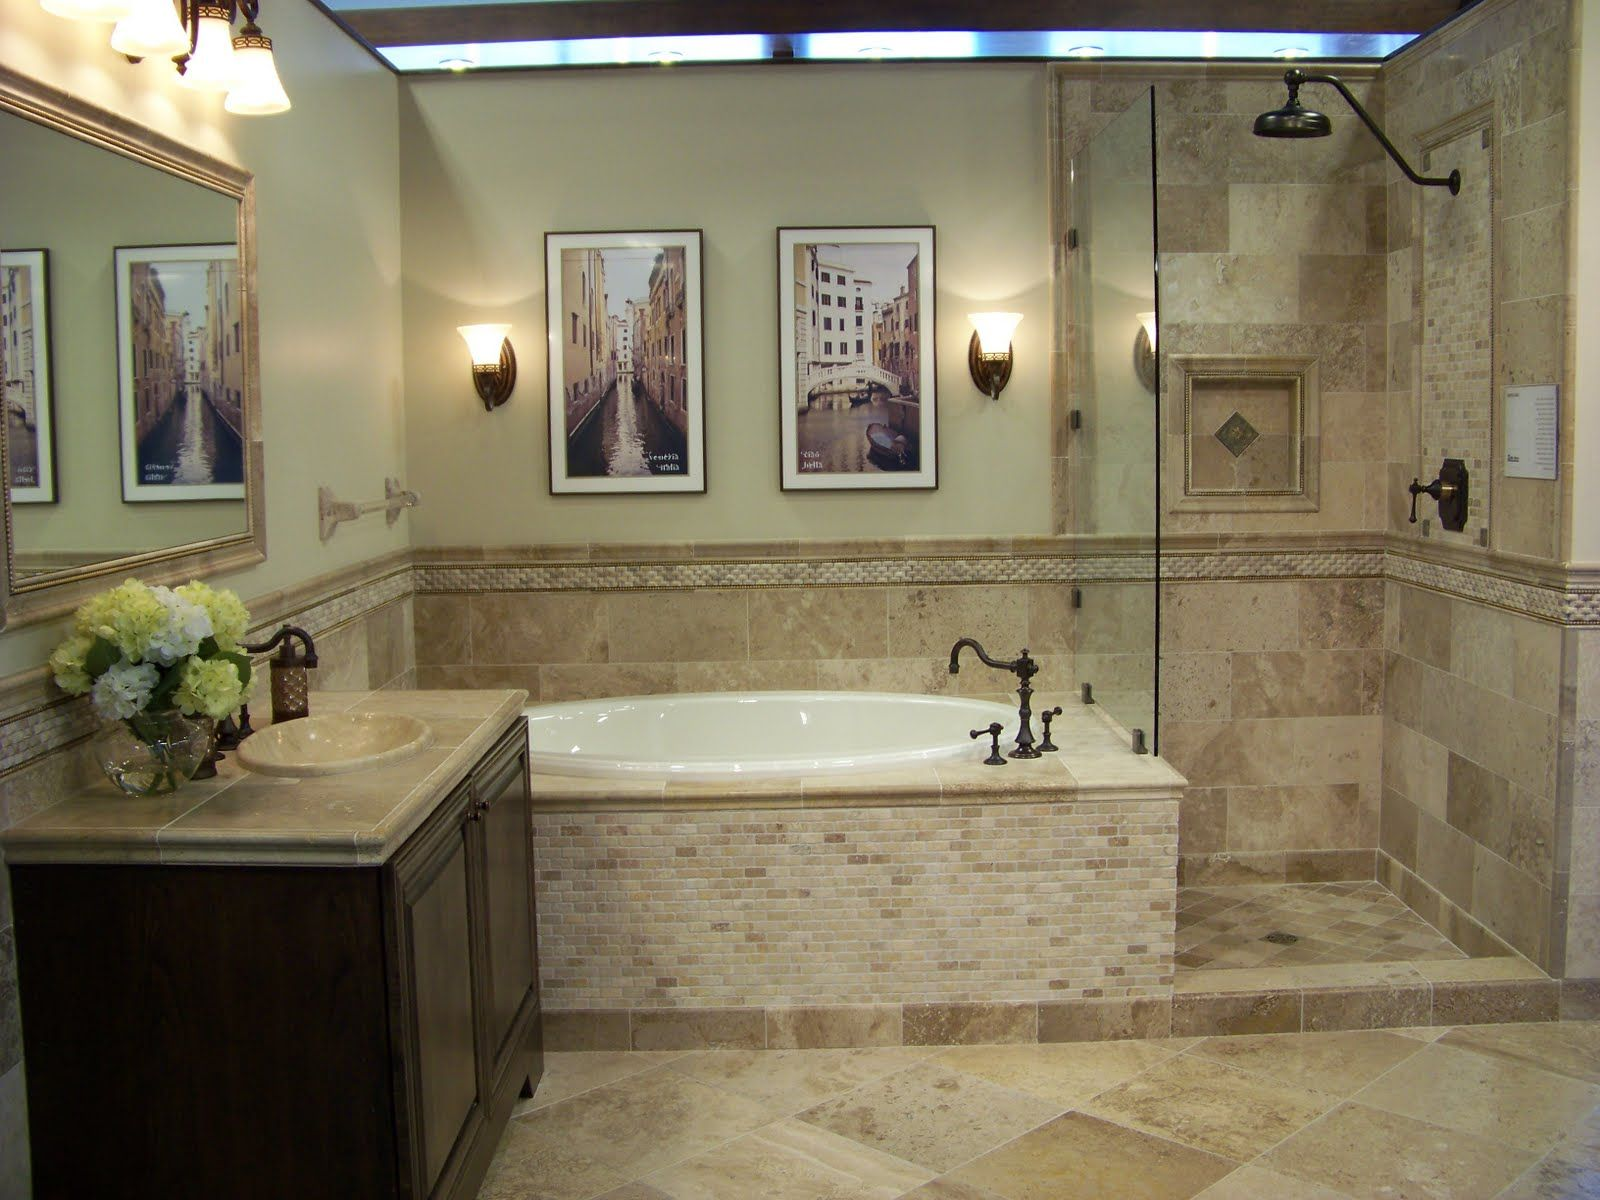 The Awesome Web Travertine Bathroom Floor Tile Designs mixture of travertine tiles gives this bathroom an earthy natural